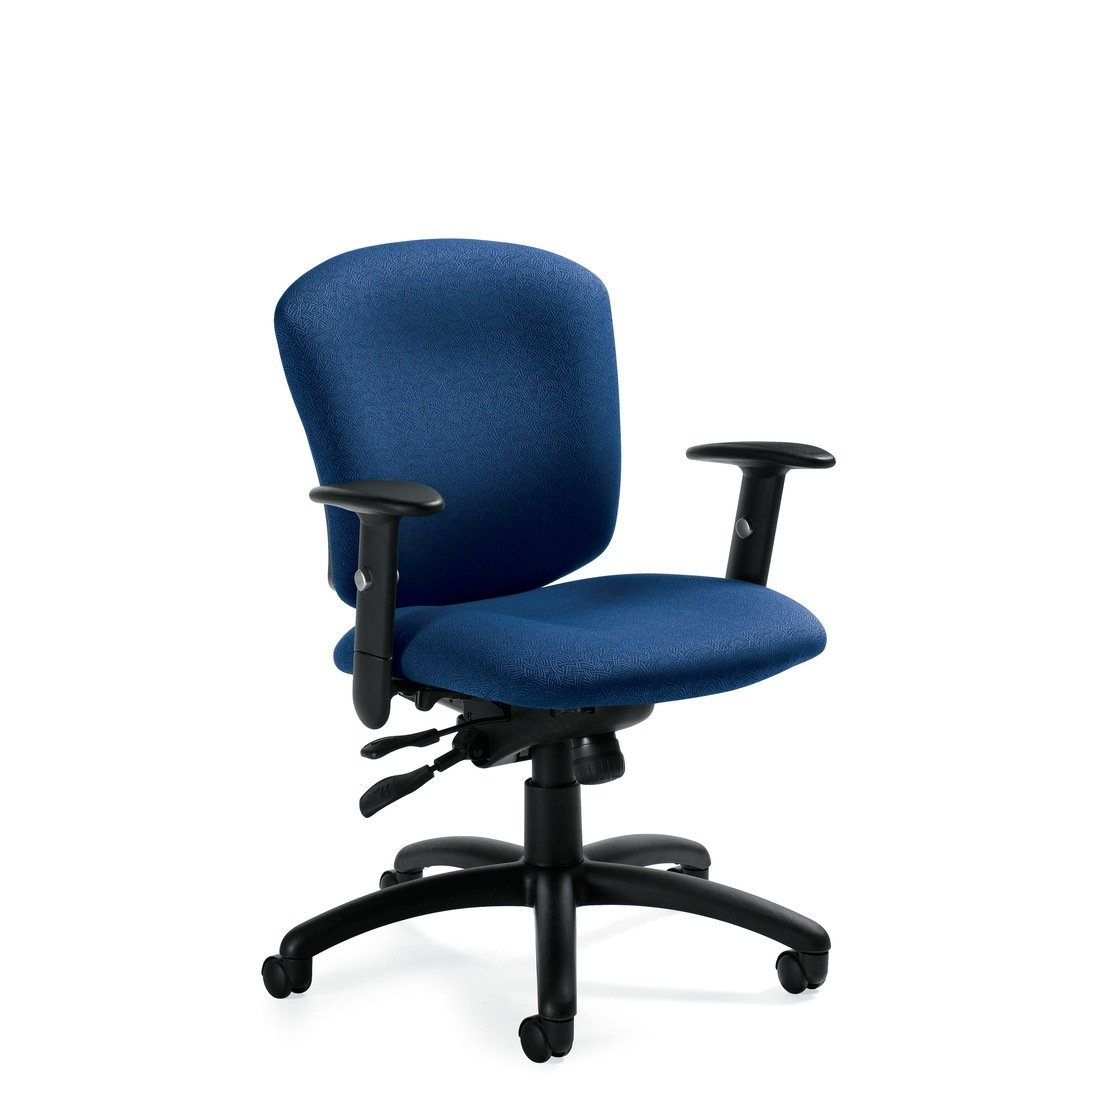 Supra X medium back synchro-tilter chair, model 5336-1. This chair has been placed on a white background.